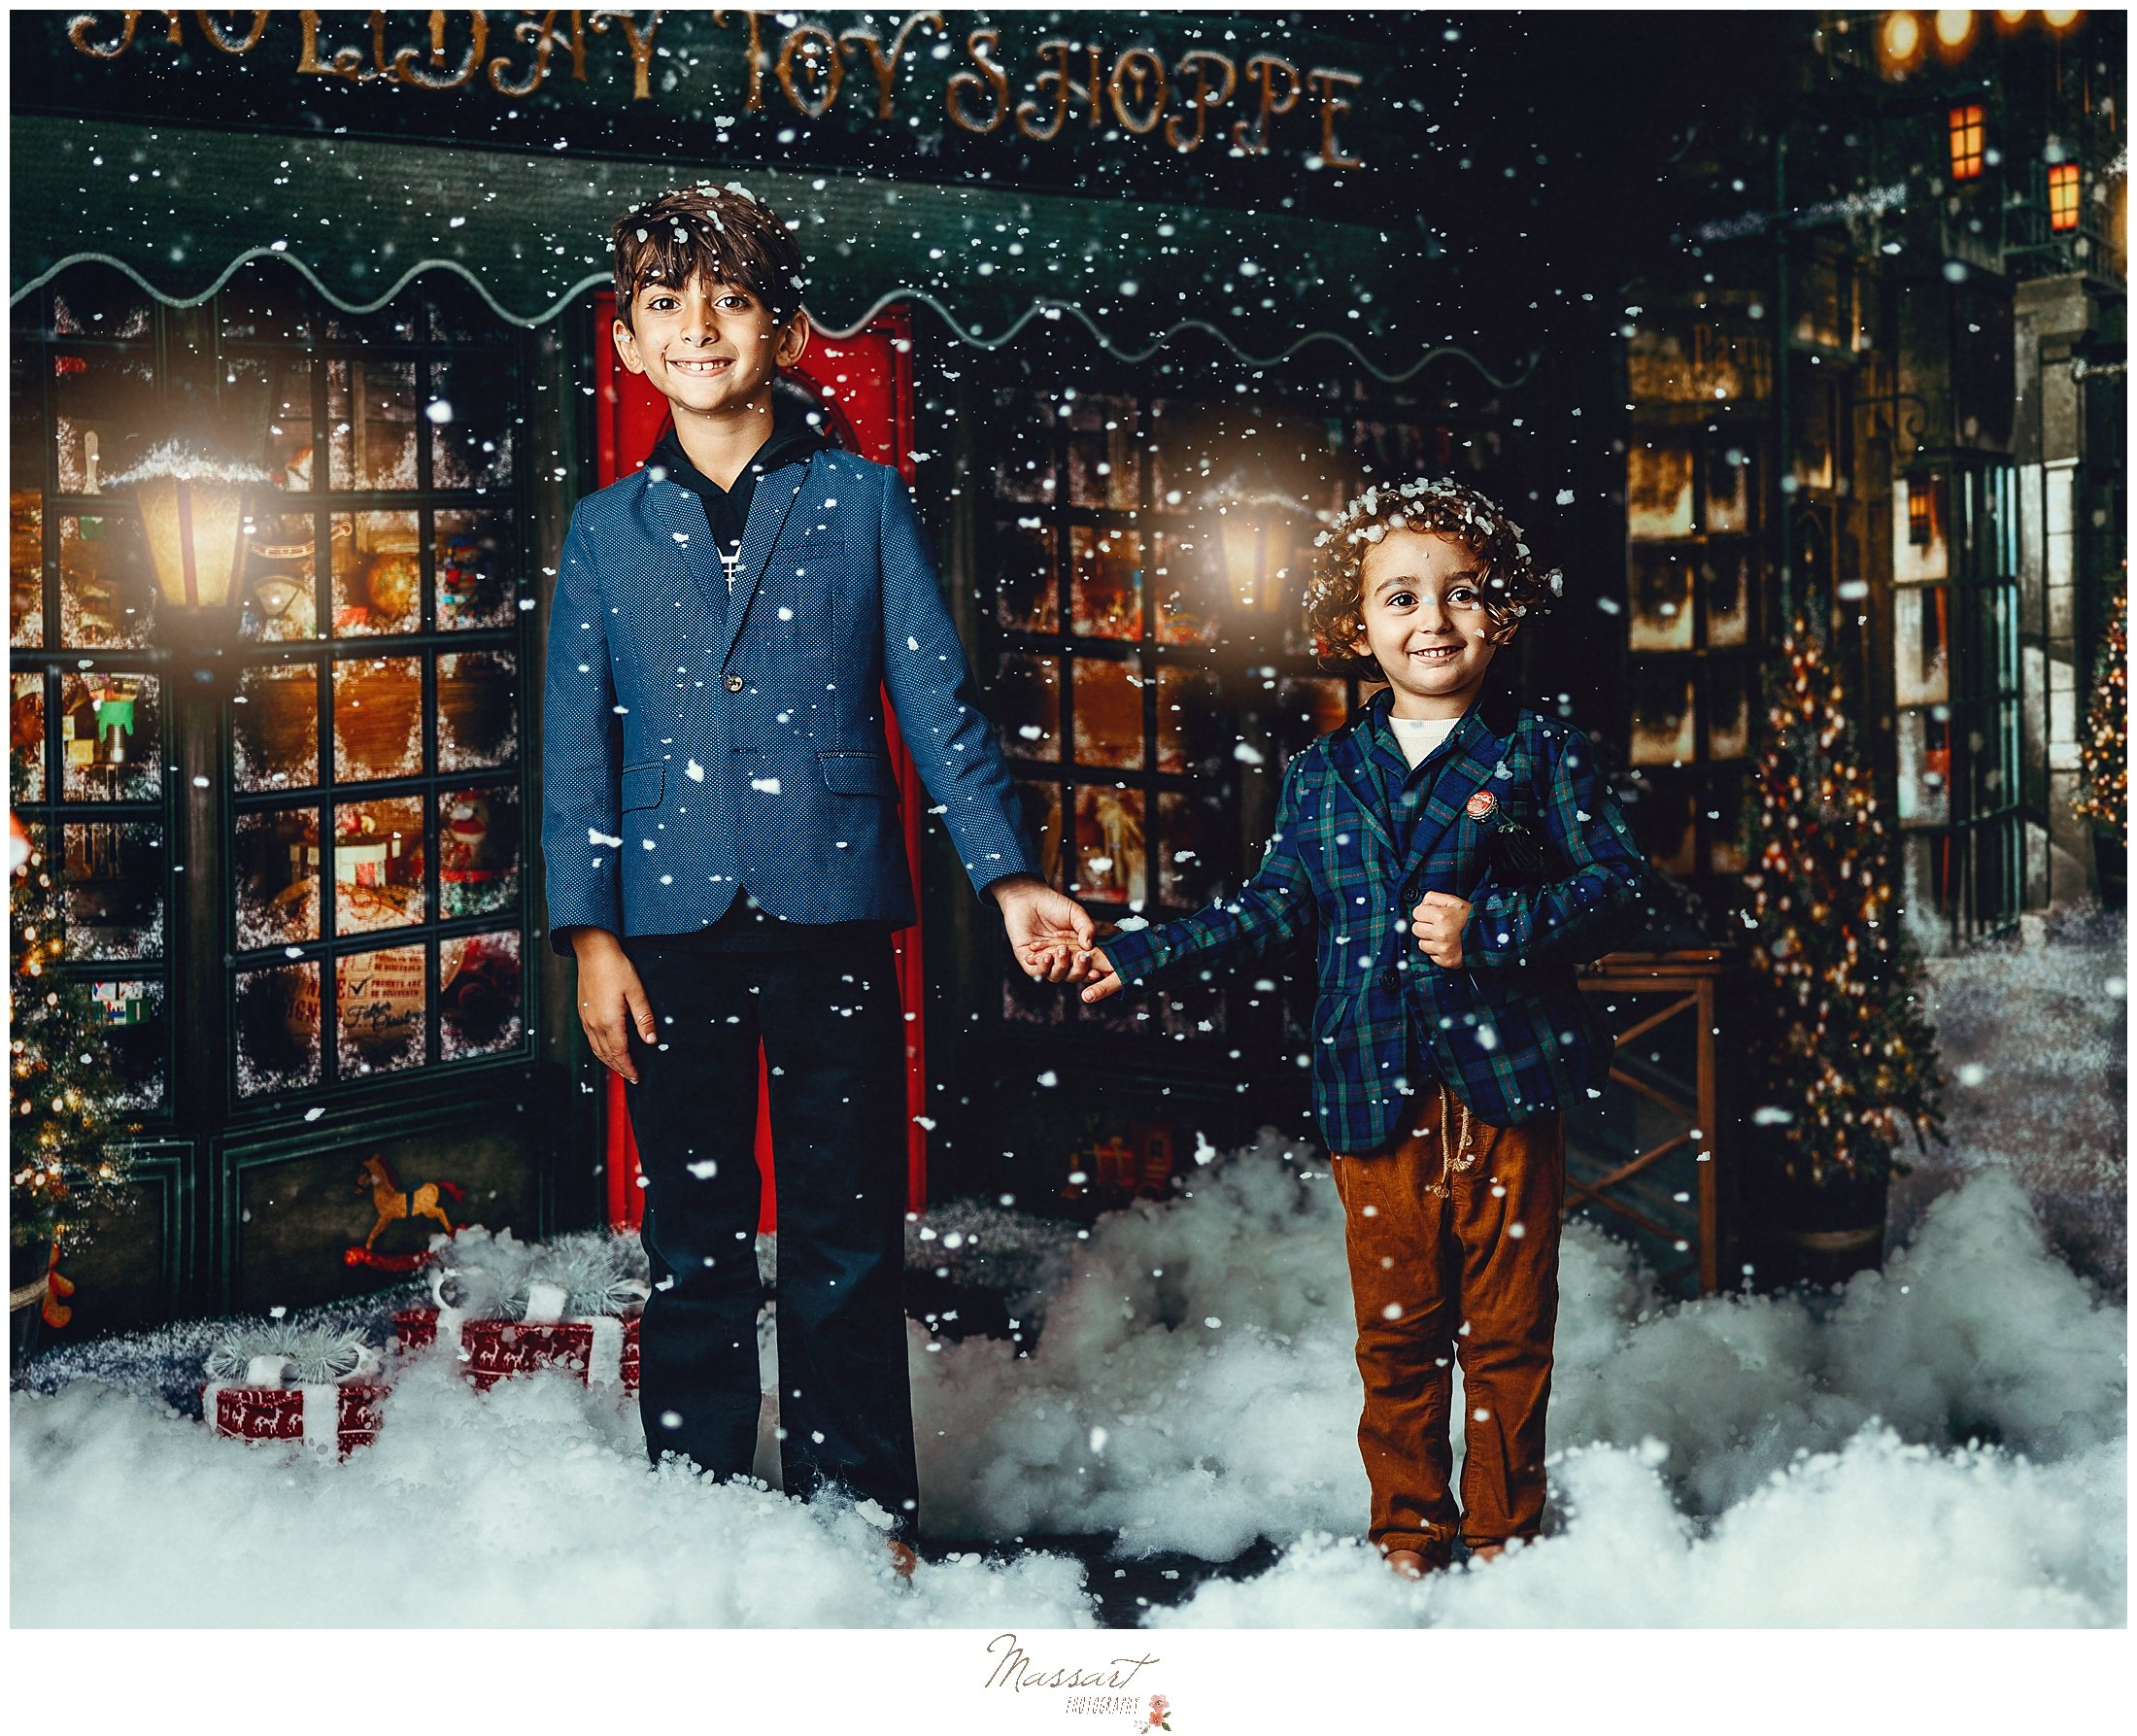 A snow scene captured during holiday mini sessions